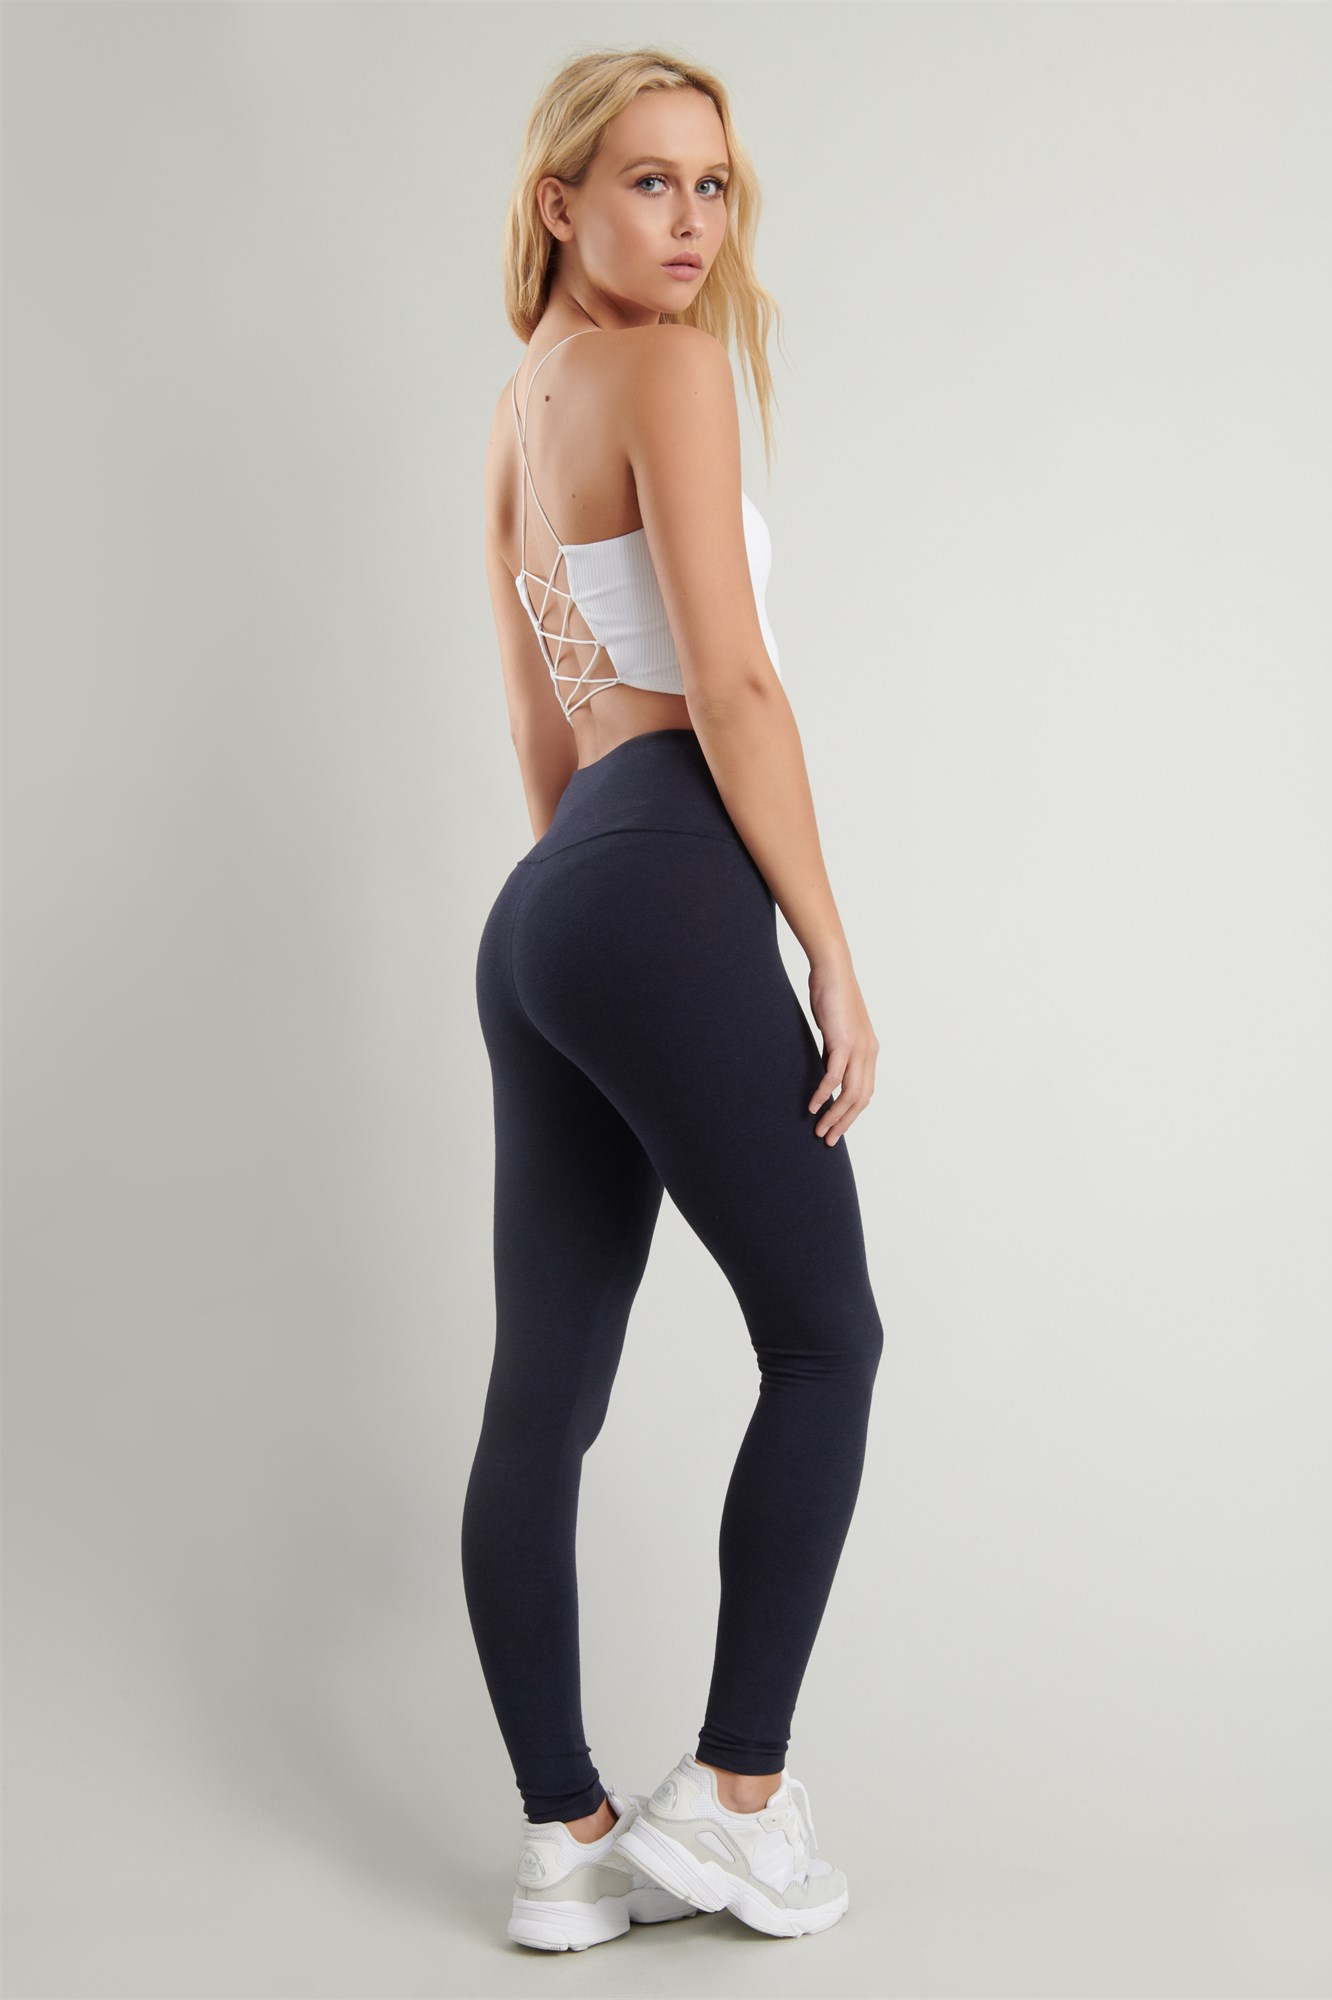 The Favorite High Rise Legging by Garage